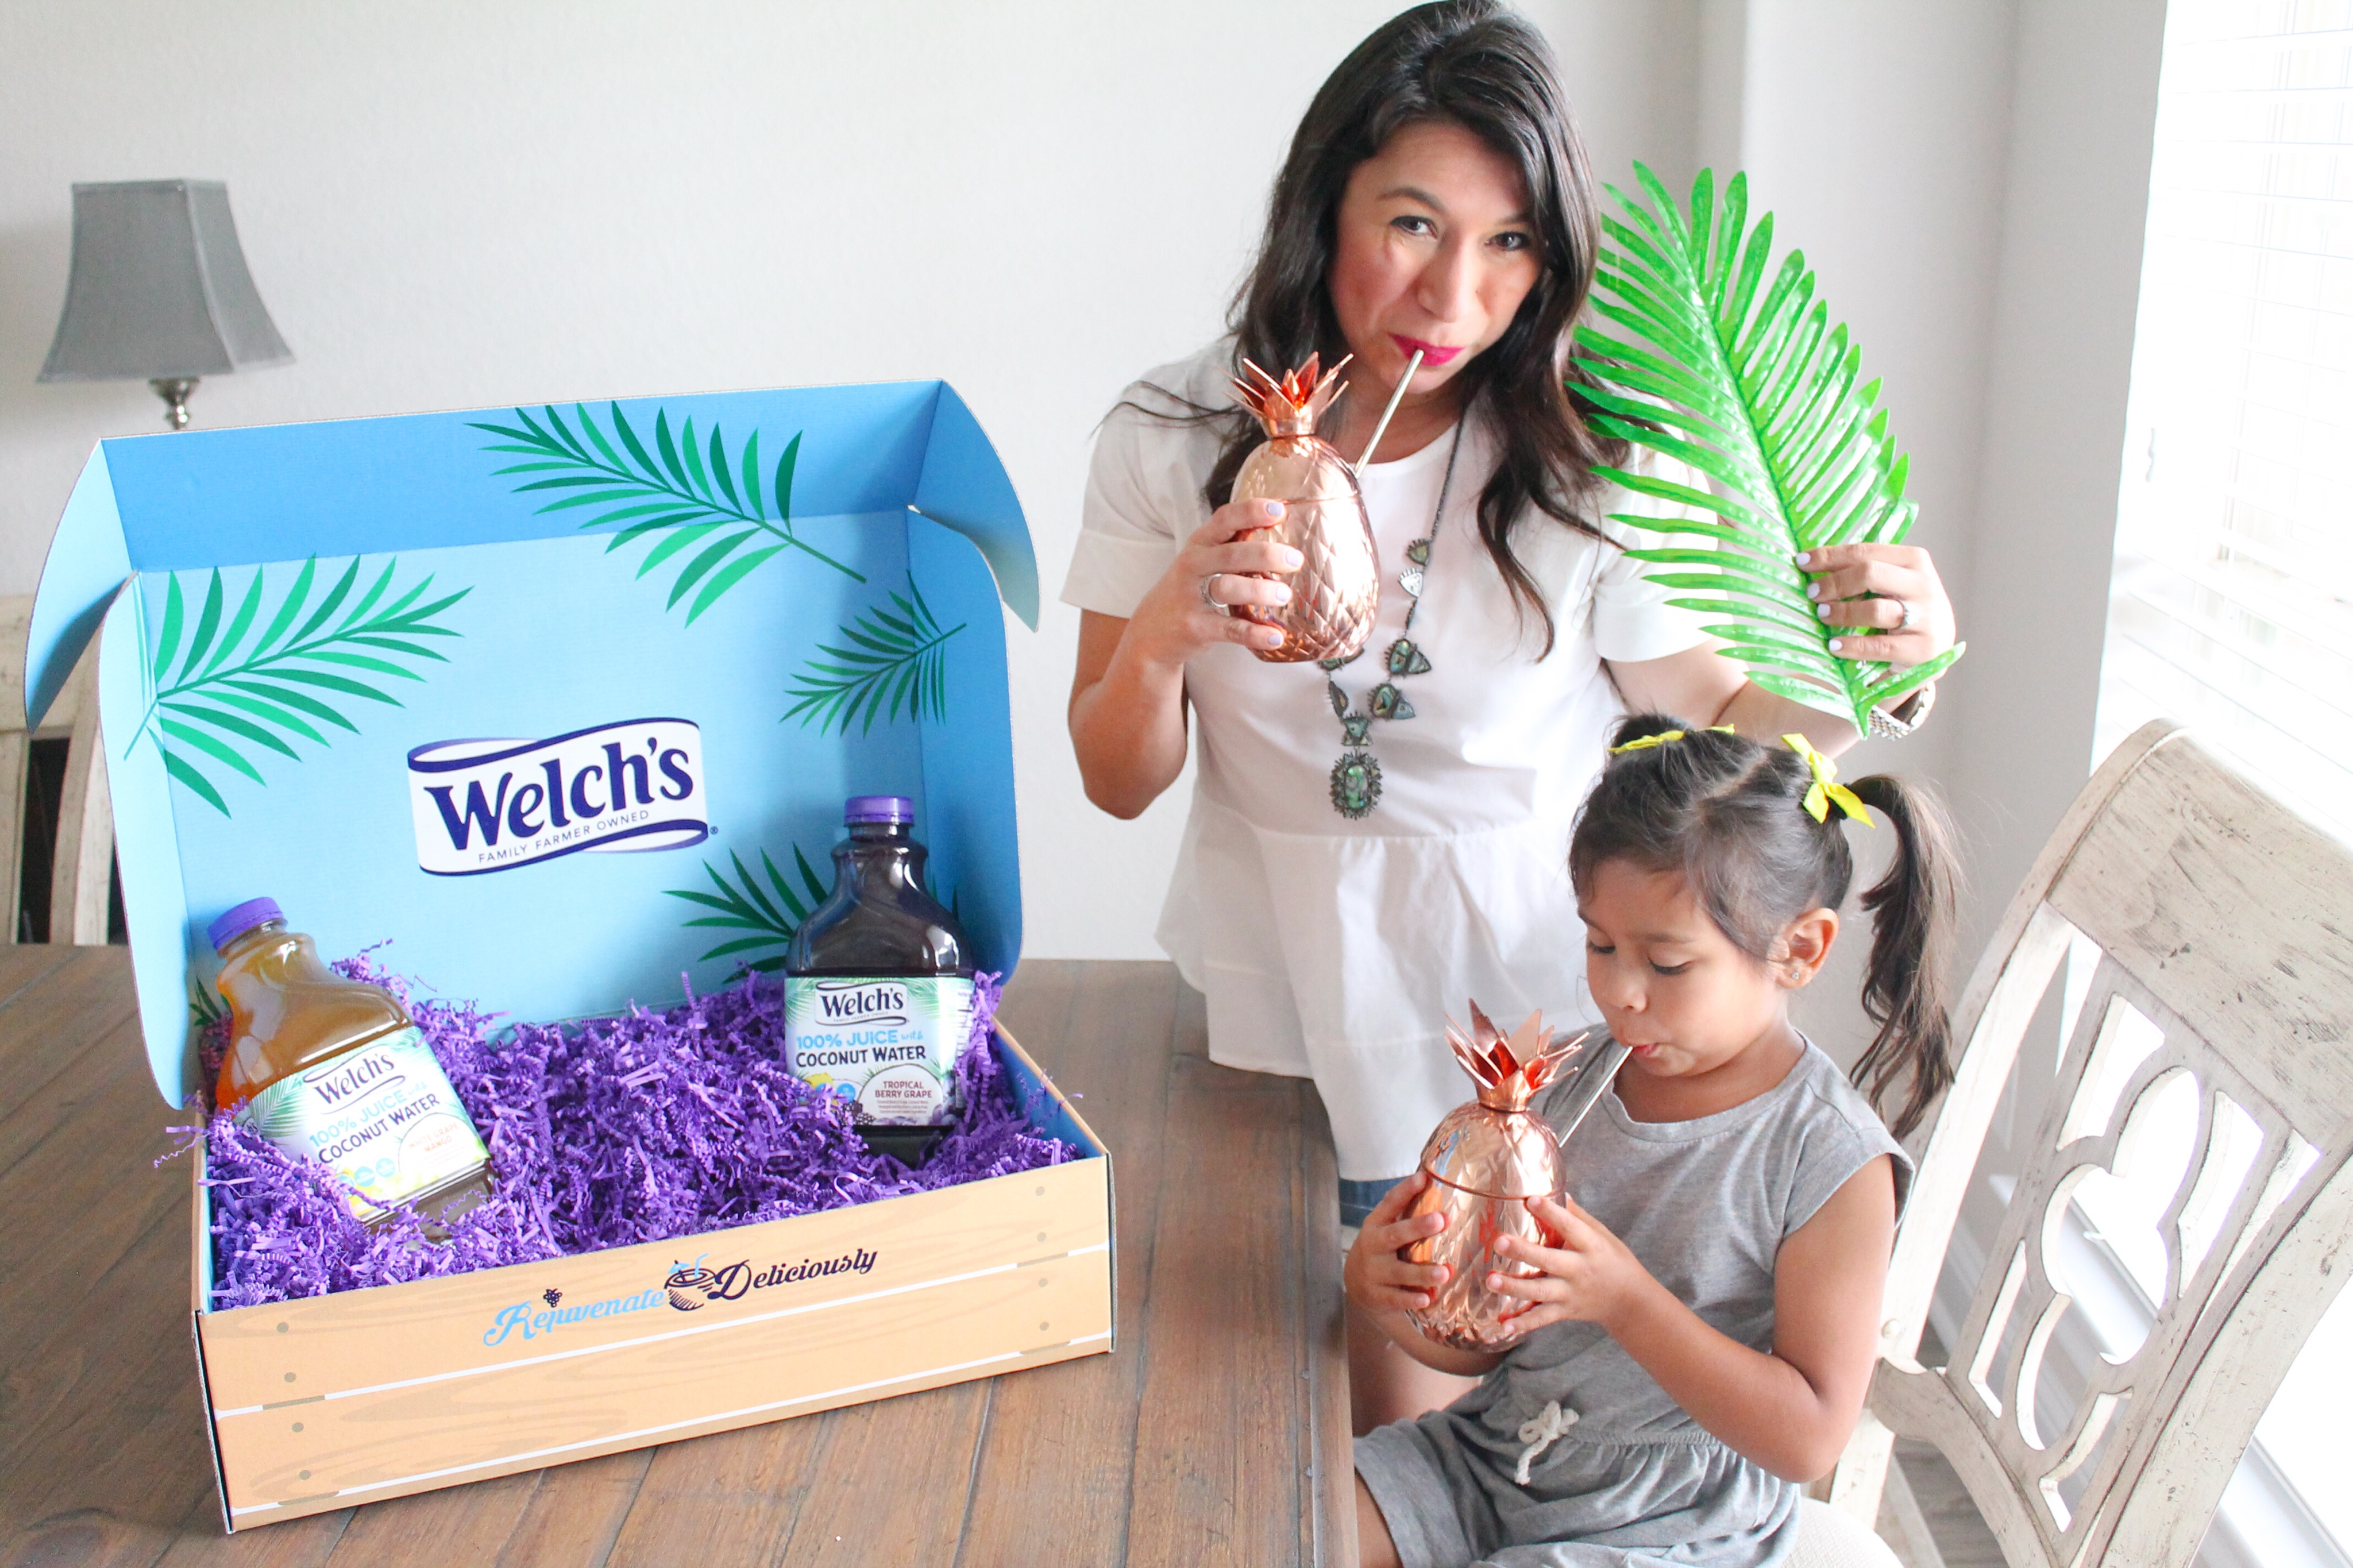 If you need some help in the chill department, here are 5 ways to not take motherhood so seriously. Sponsored by Welch's new 100% juice with Coconut Water. #welchs #motherhood #coconut water